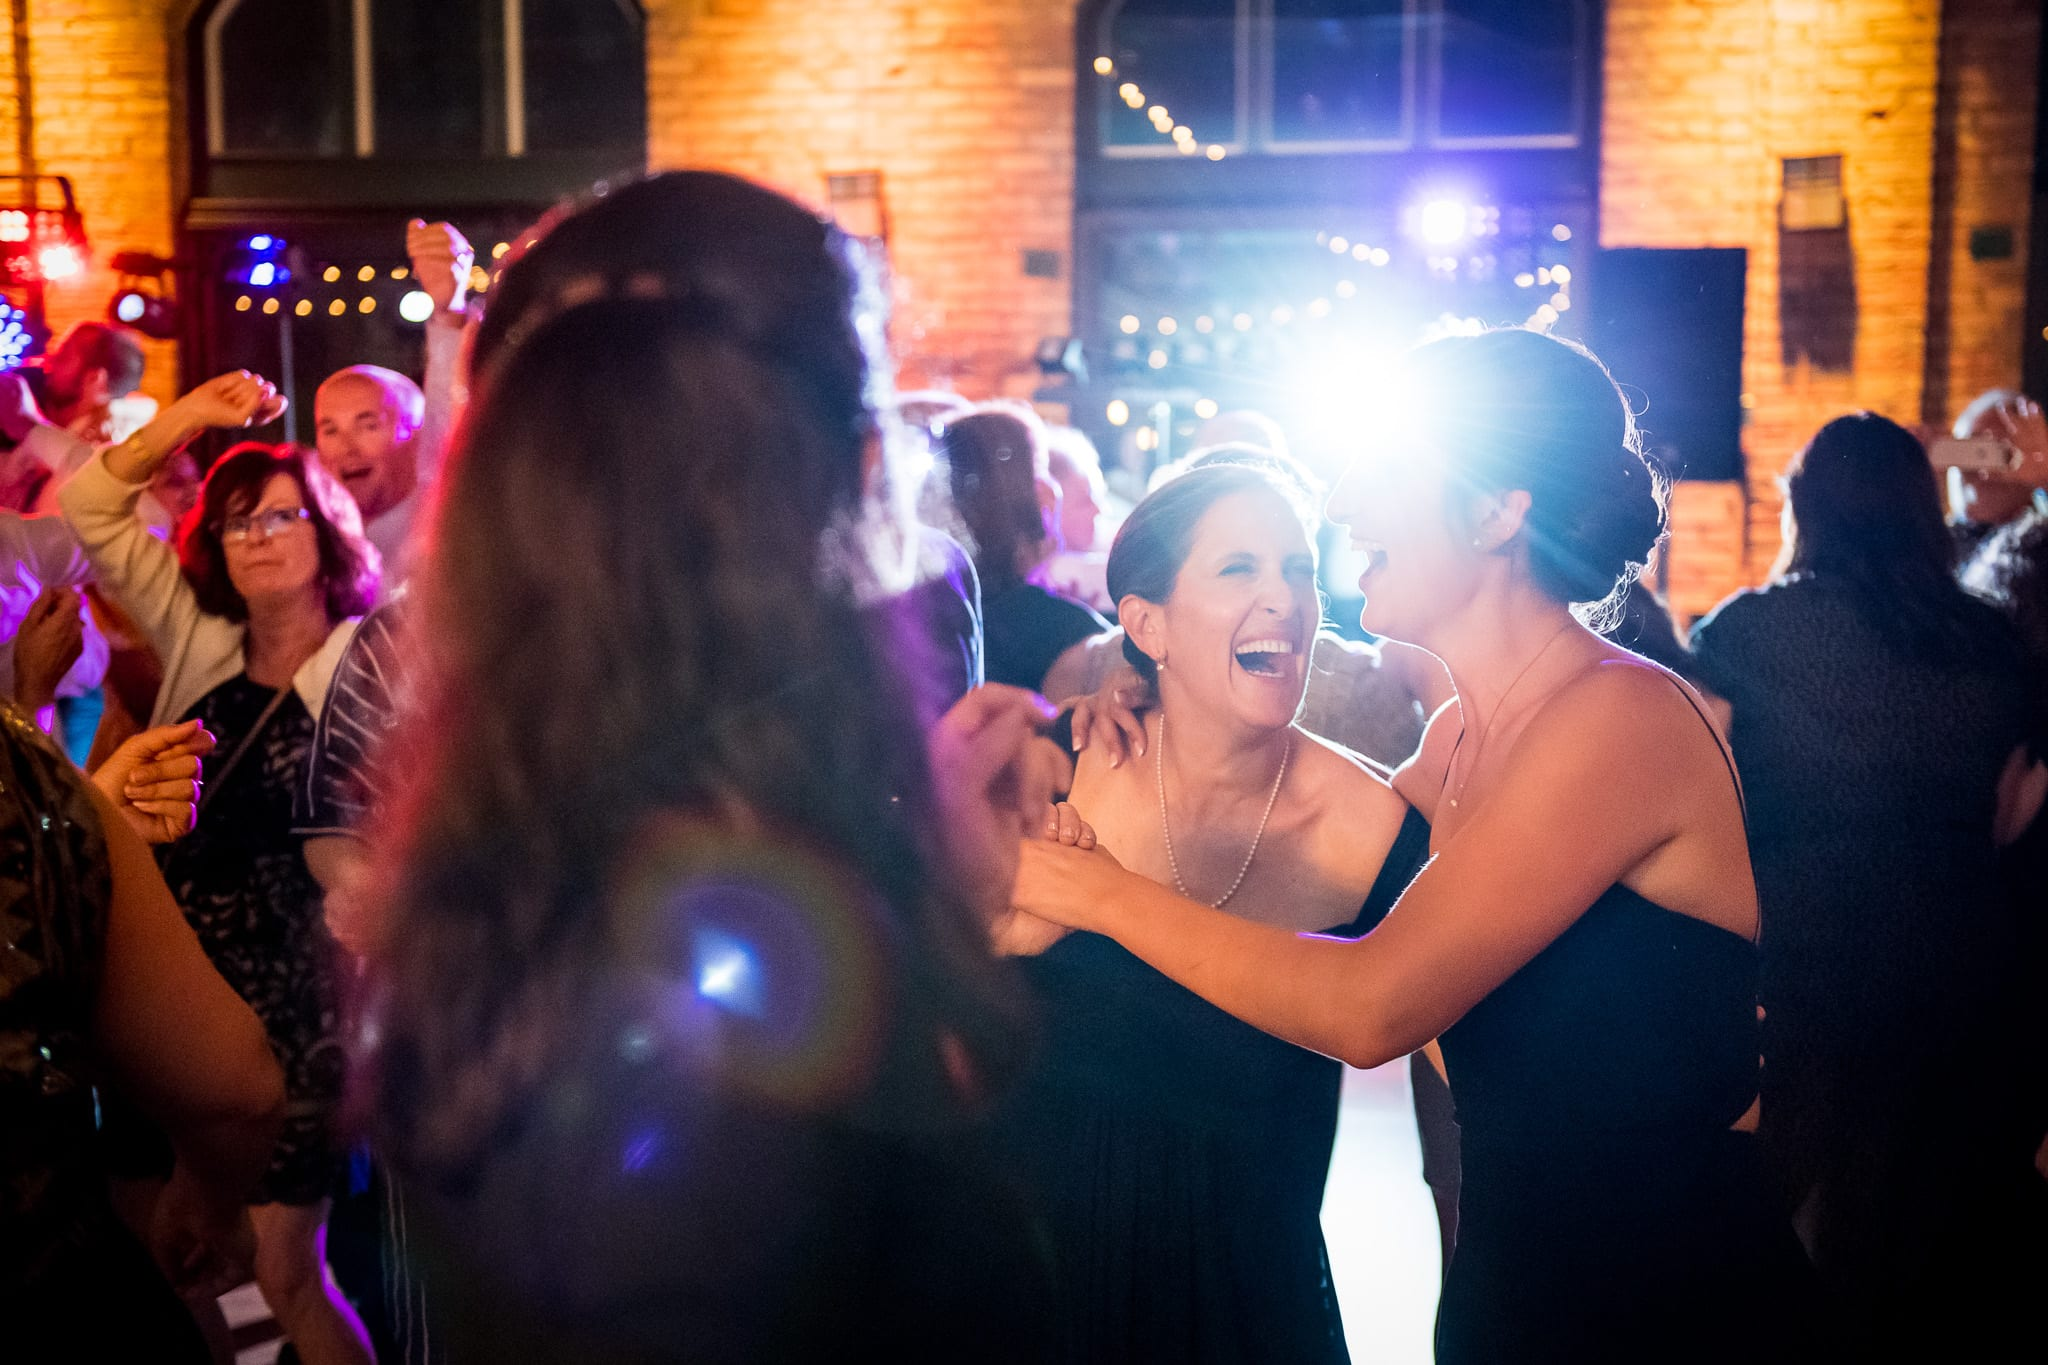 Mother and daughter laughing with a flare of light popping in between them on the dance floor